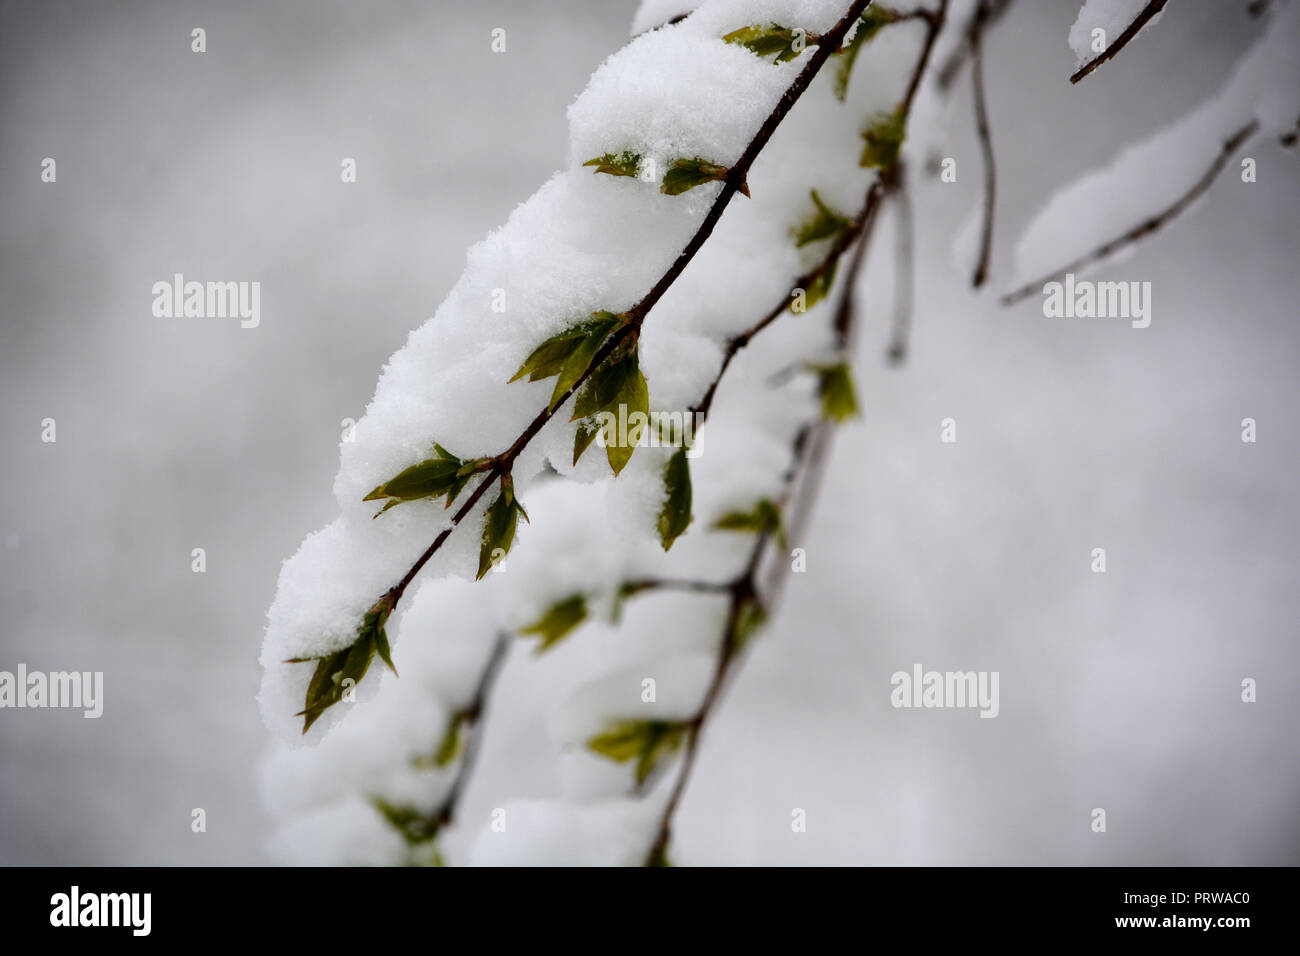 Early Spring snow on honeysuckle branch. Taken in McCollugh Estate Nature Preserve. - Stock Image